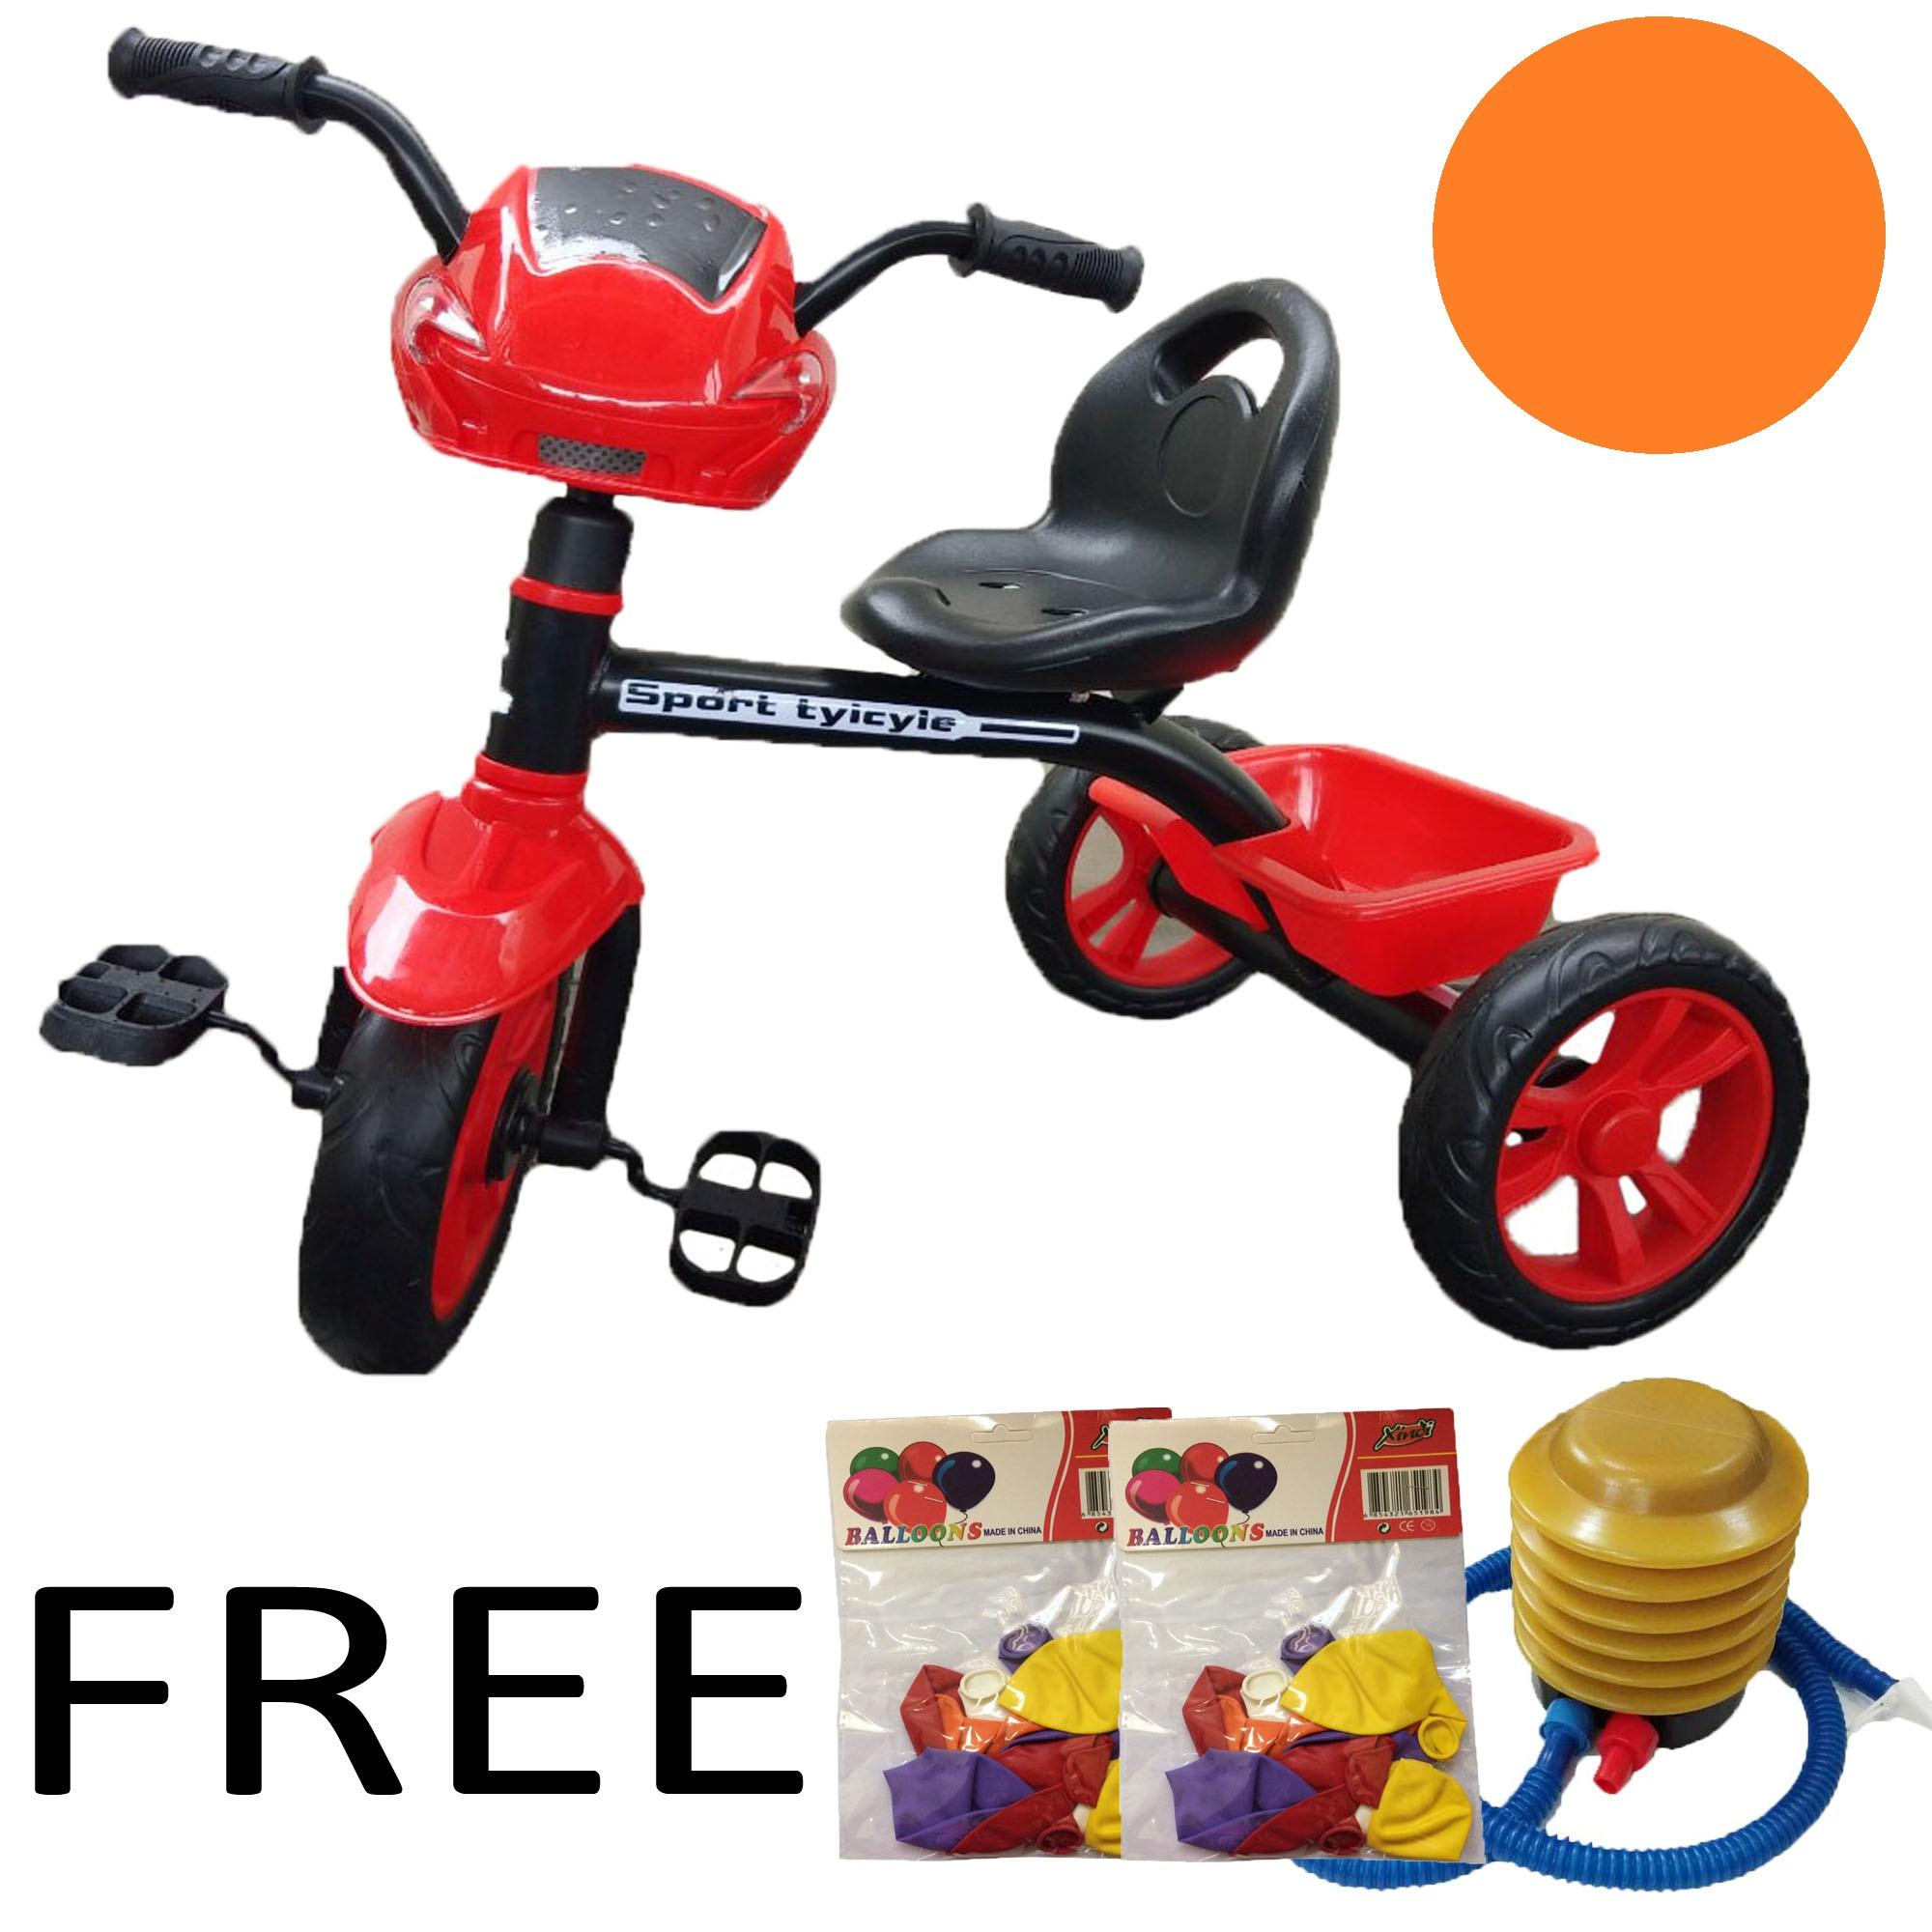 a20a649a104 Children's Learning Bike Tricycle Trike Three Wheel Bike for Kids FREE  2packs Ballons + 1Pc.